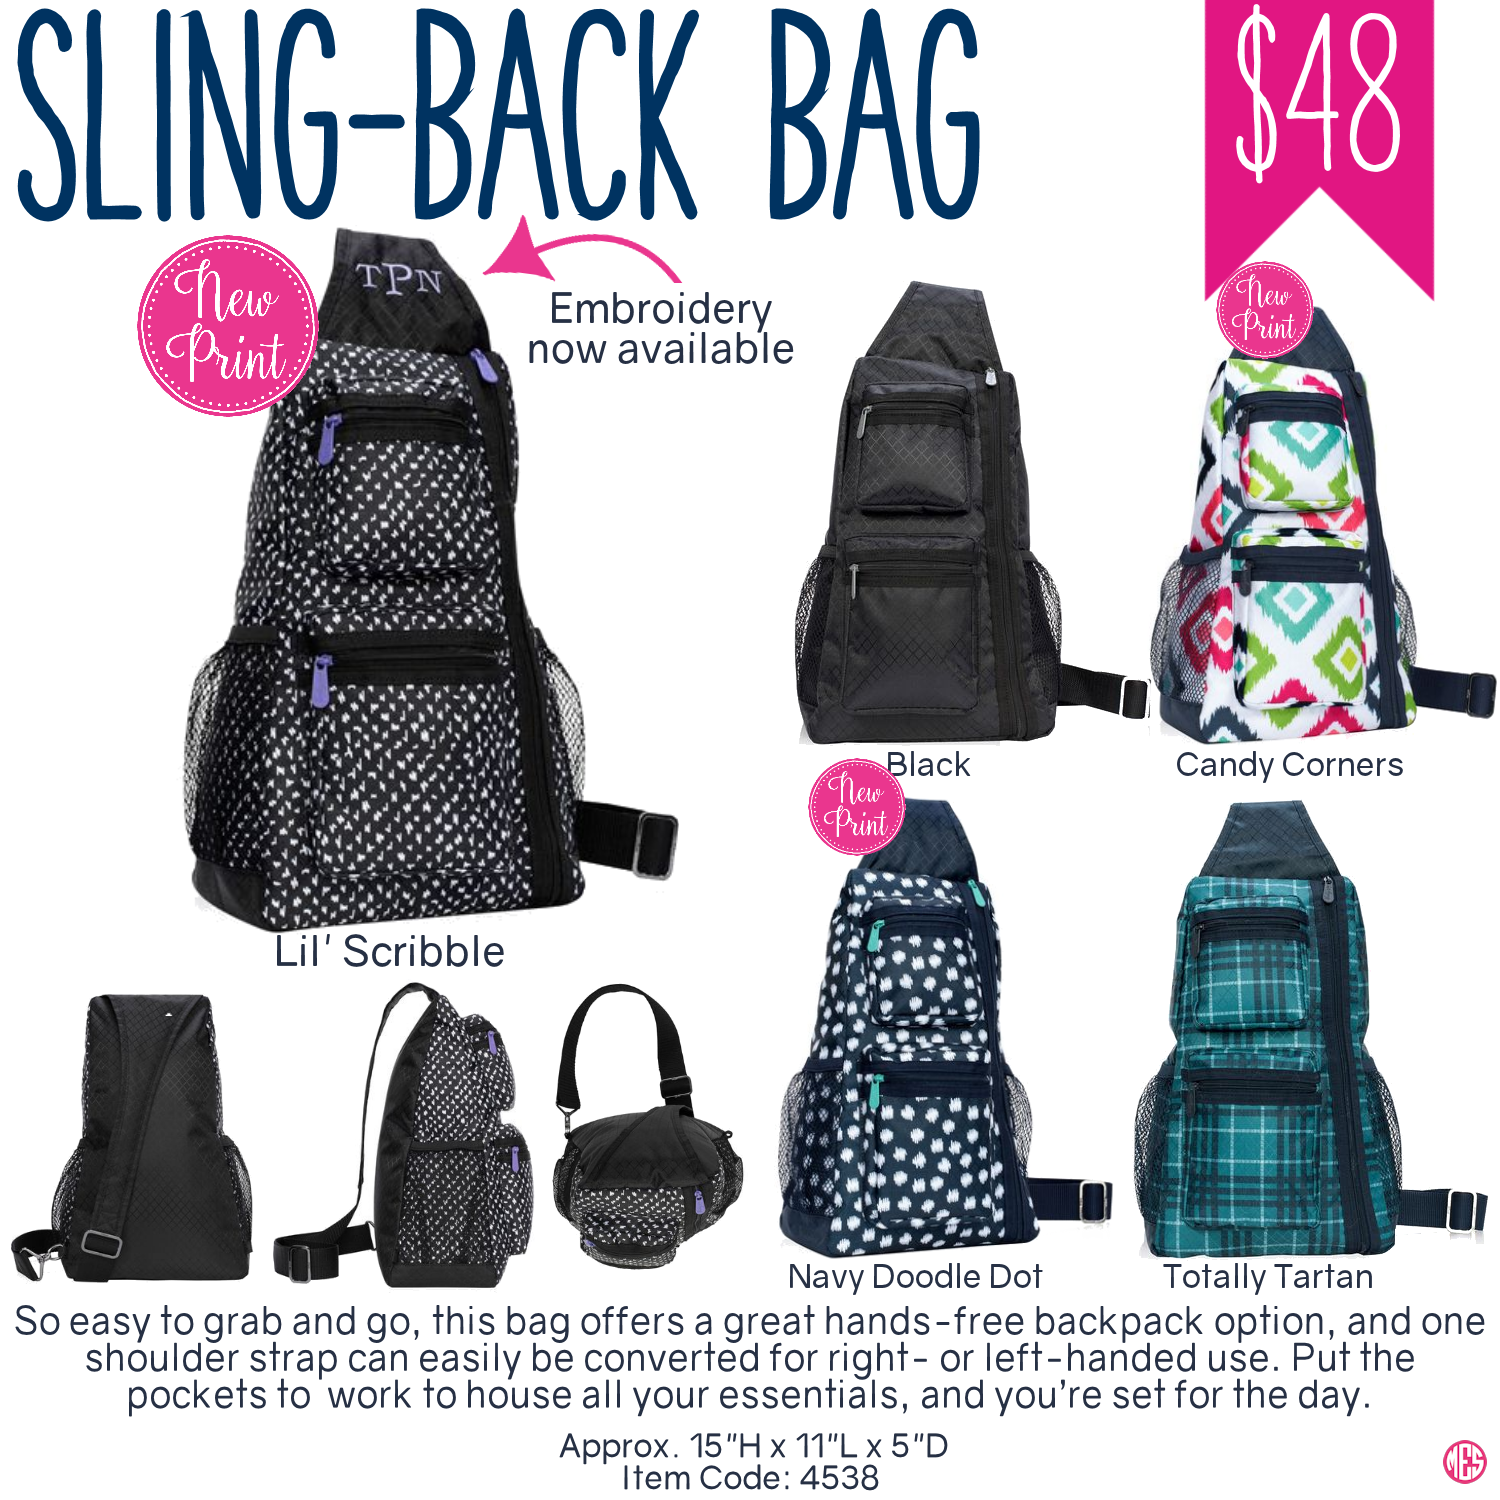 Thirty-One Sling-Back Bag - Spring/Summer 2017 | Thirty-One ...